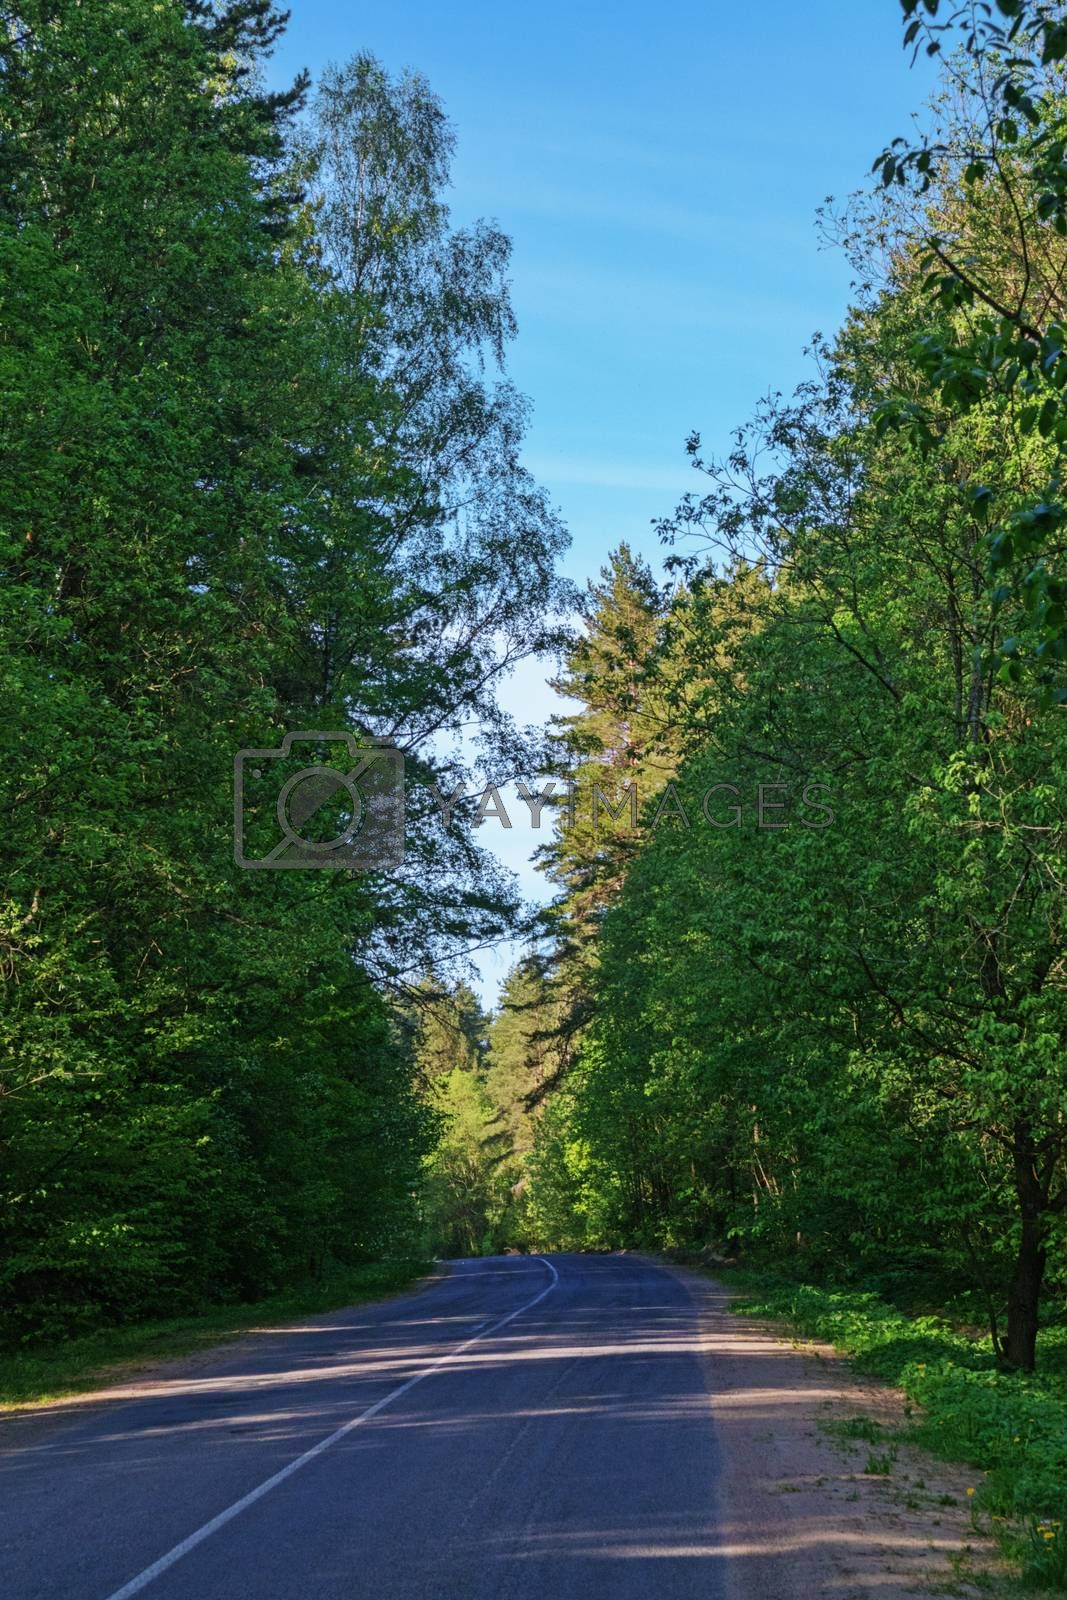 The road through deciduous forest. by photoka